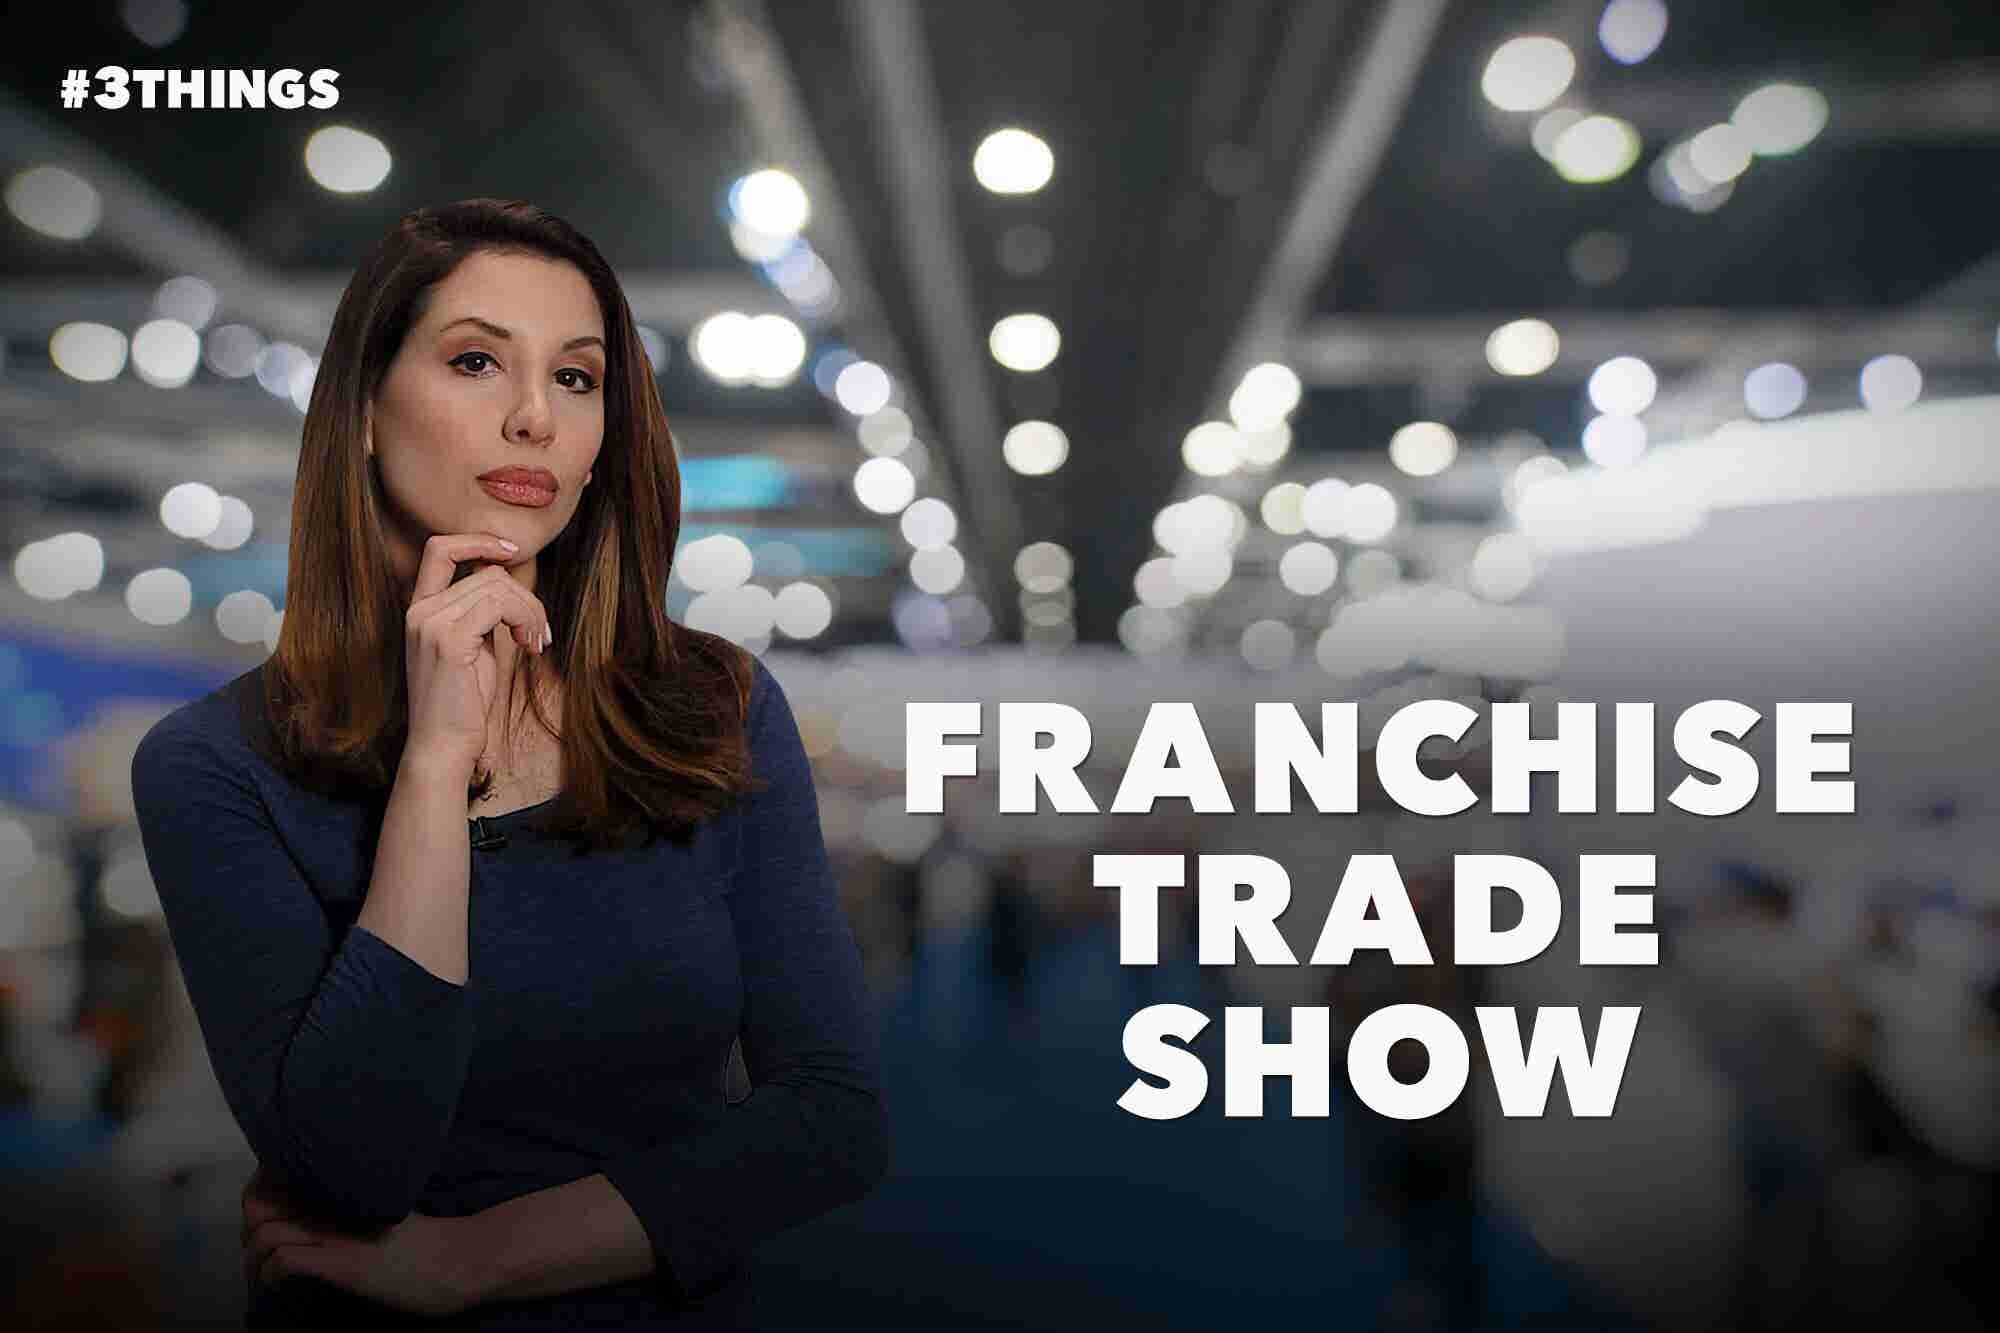 How to Get the Most Out of a Franchise Trade Show (60-Second Video)